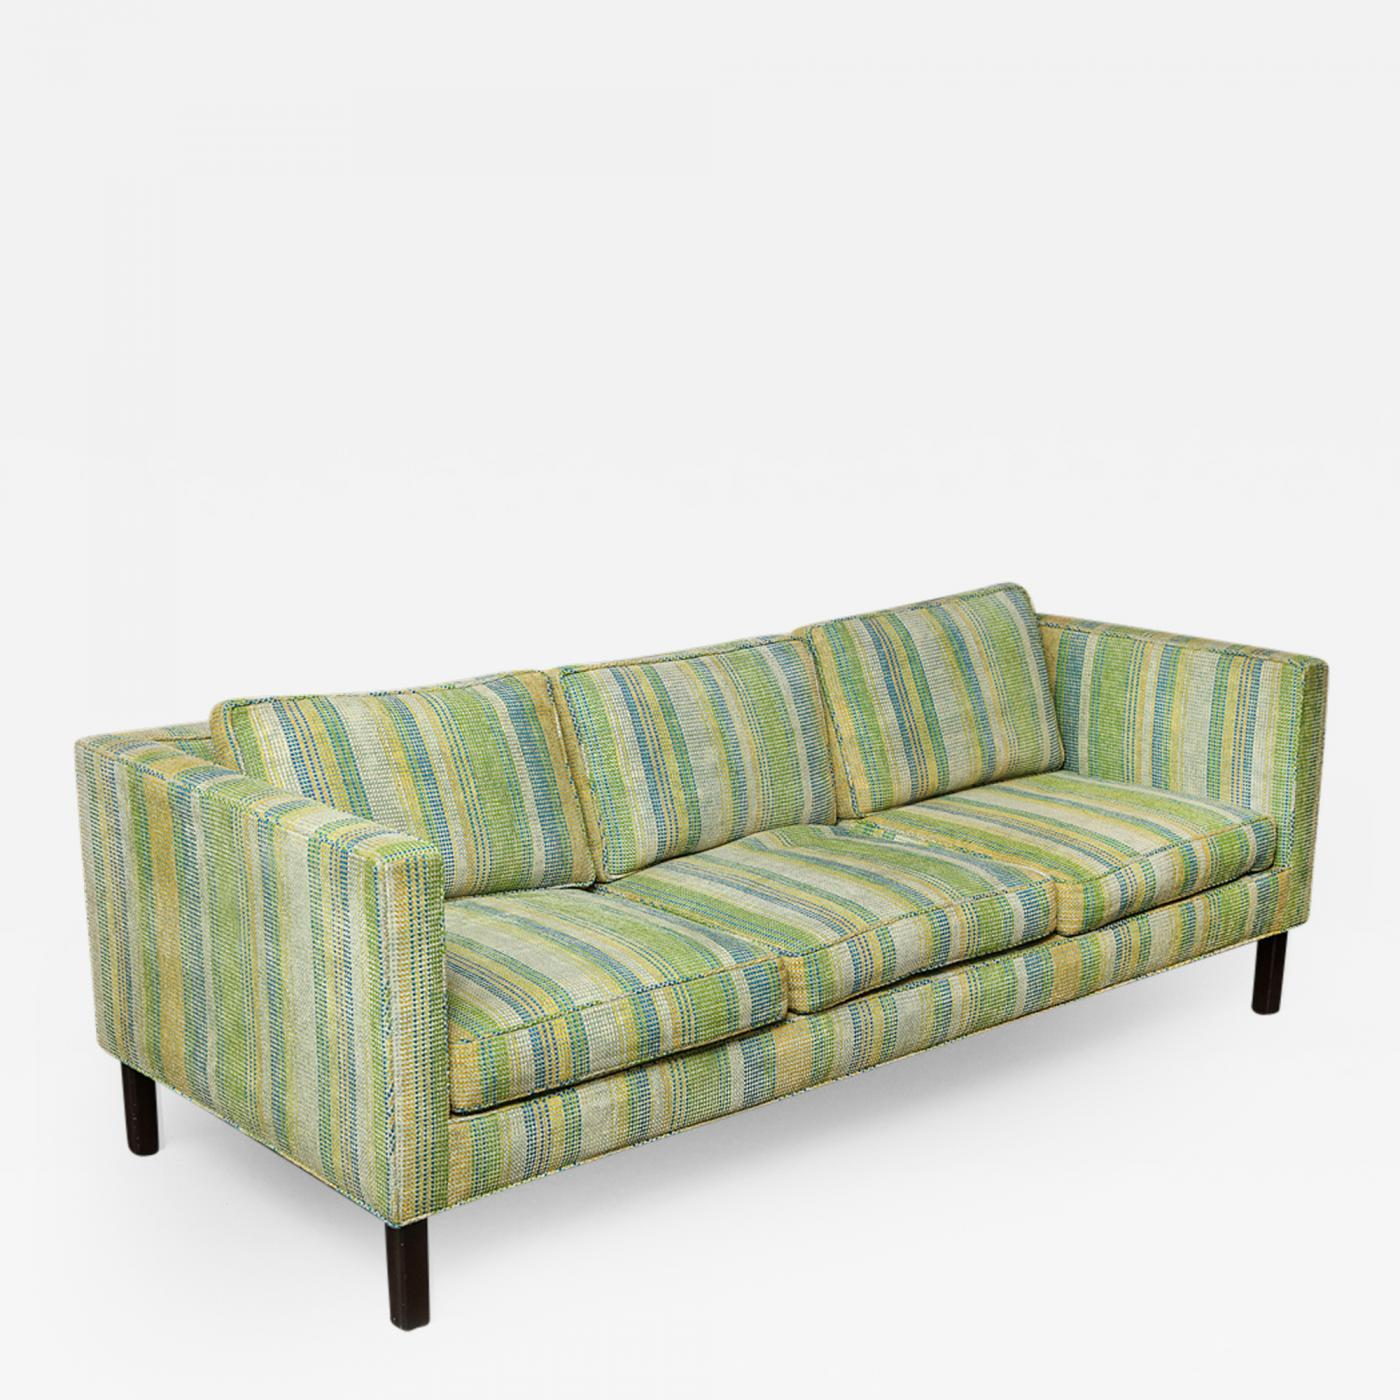 Ordinaire Listings / Furniture / Seating / Sofas · Edward Wormley Sofa